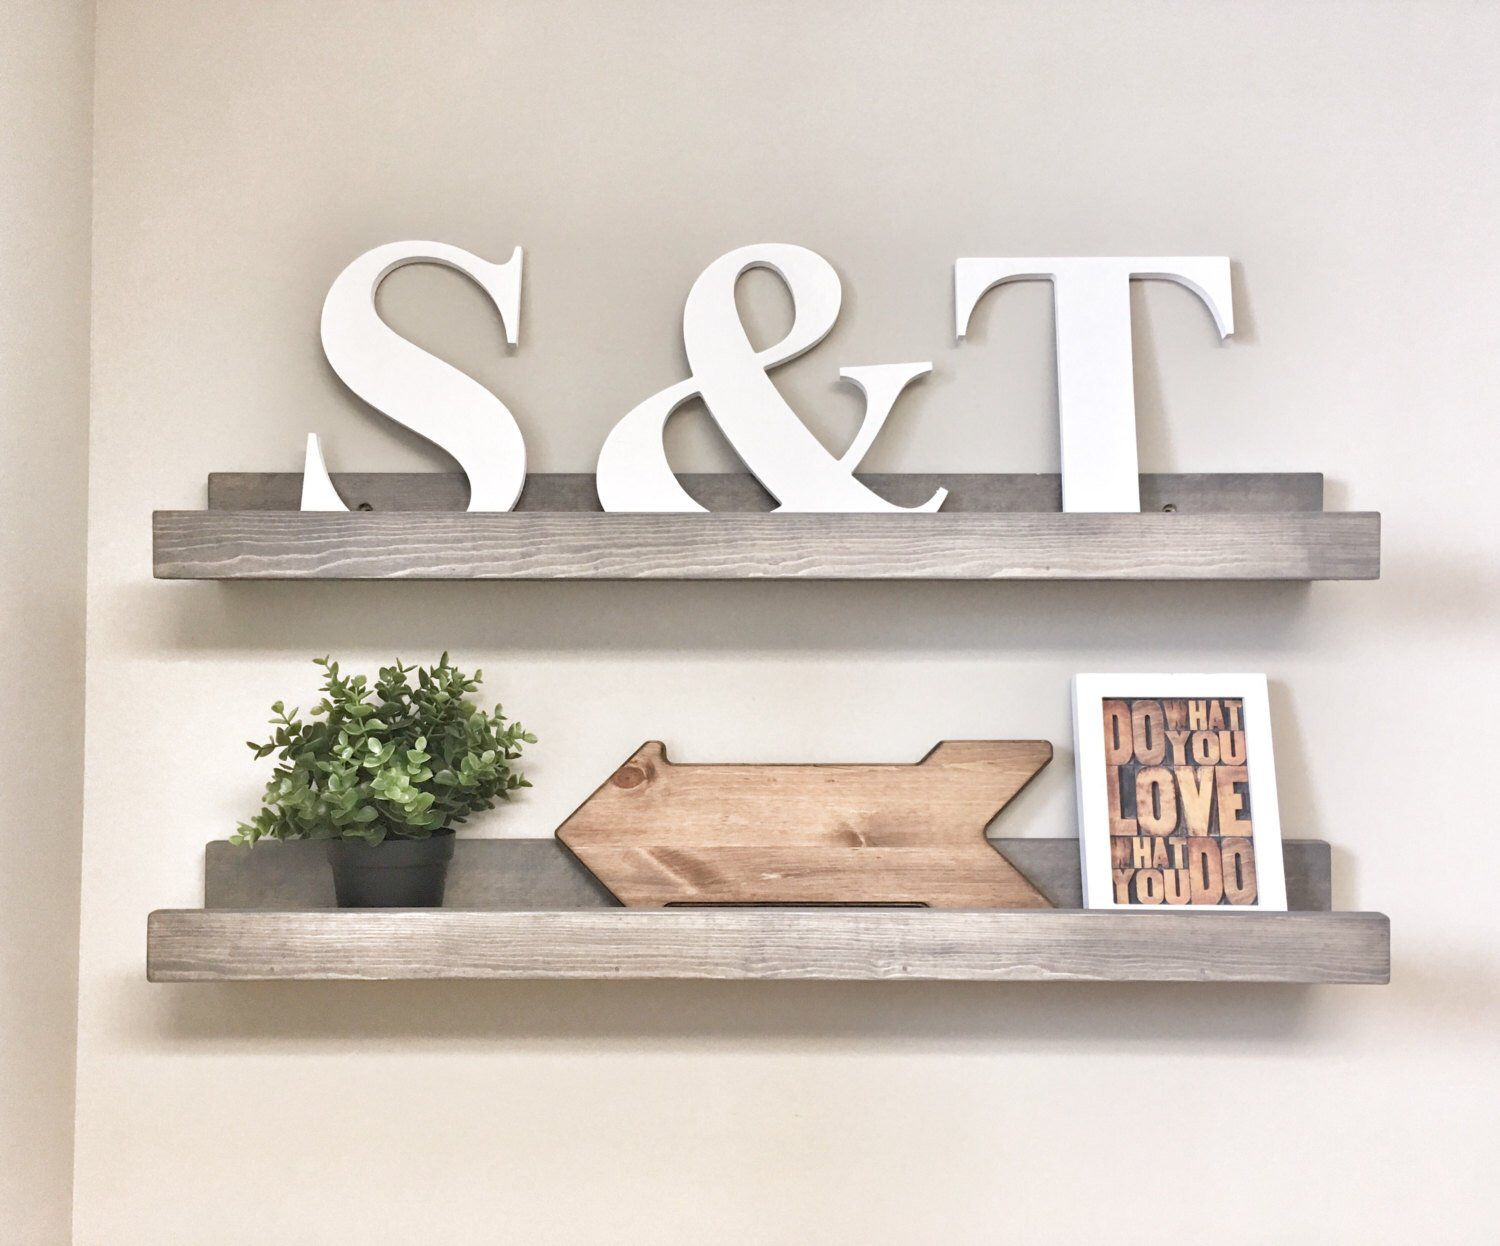 Set Of 2 Wood Wall Floating Shelves For Gallery Wall Farmhouse Picture Ledge Shelves To Display Decor And Photos Wall Hanging Book Shelf Picture Ledge Shelf Floating Shelves Floating Shelf Decor